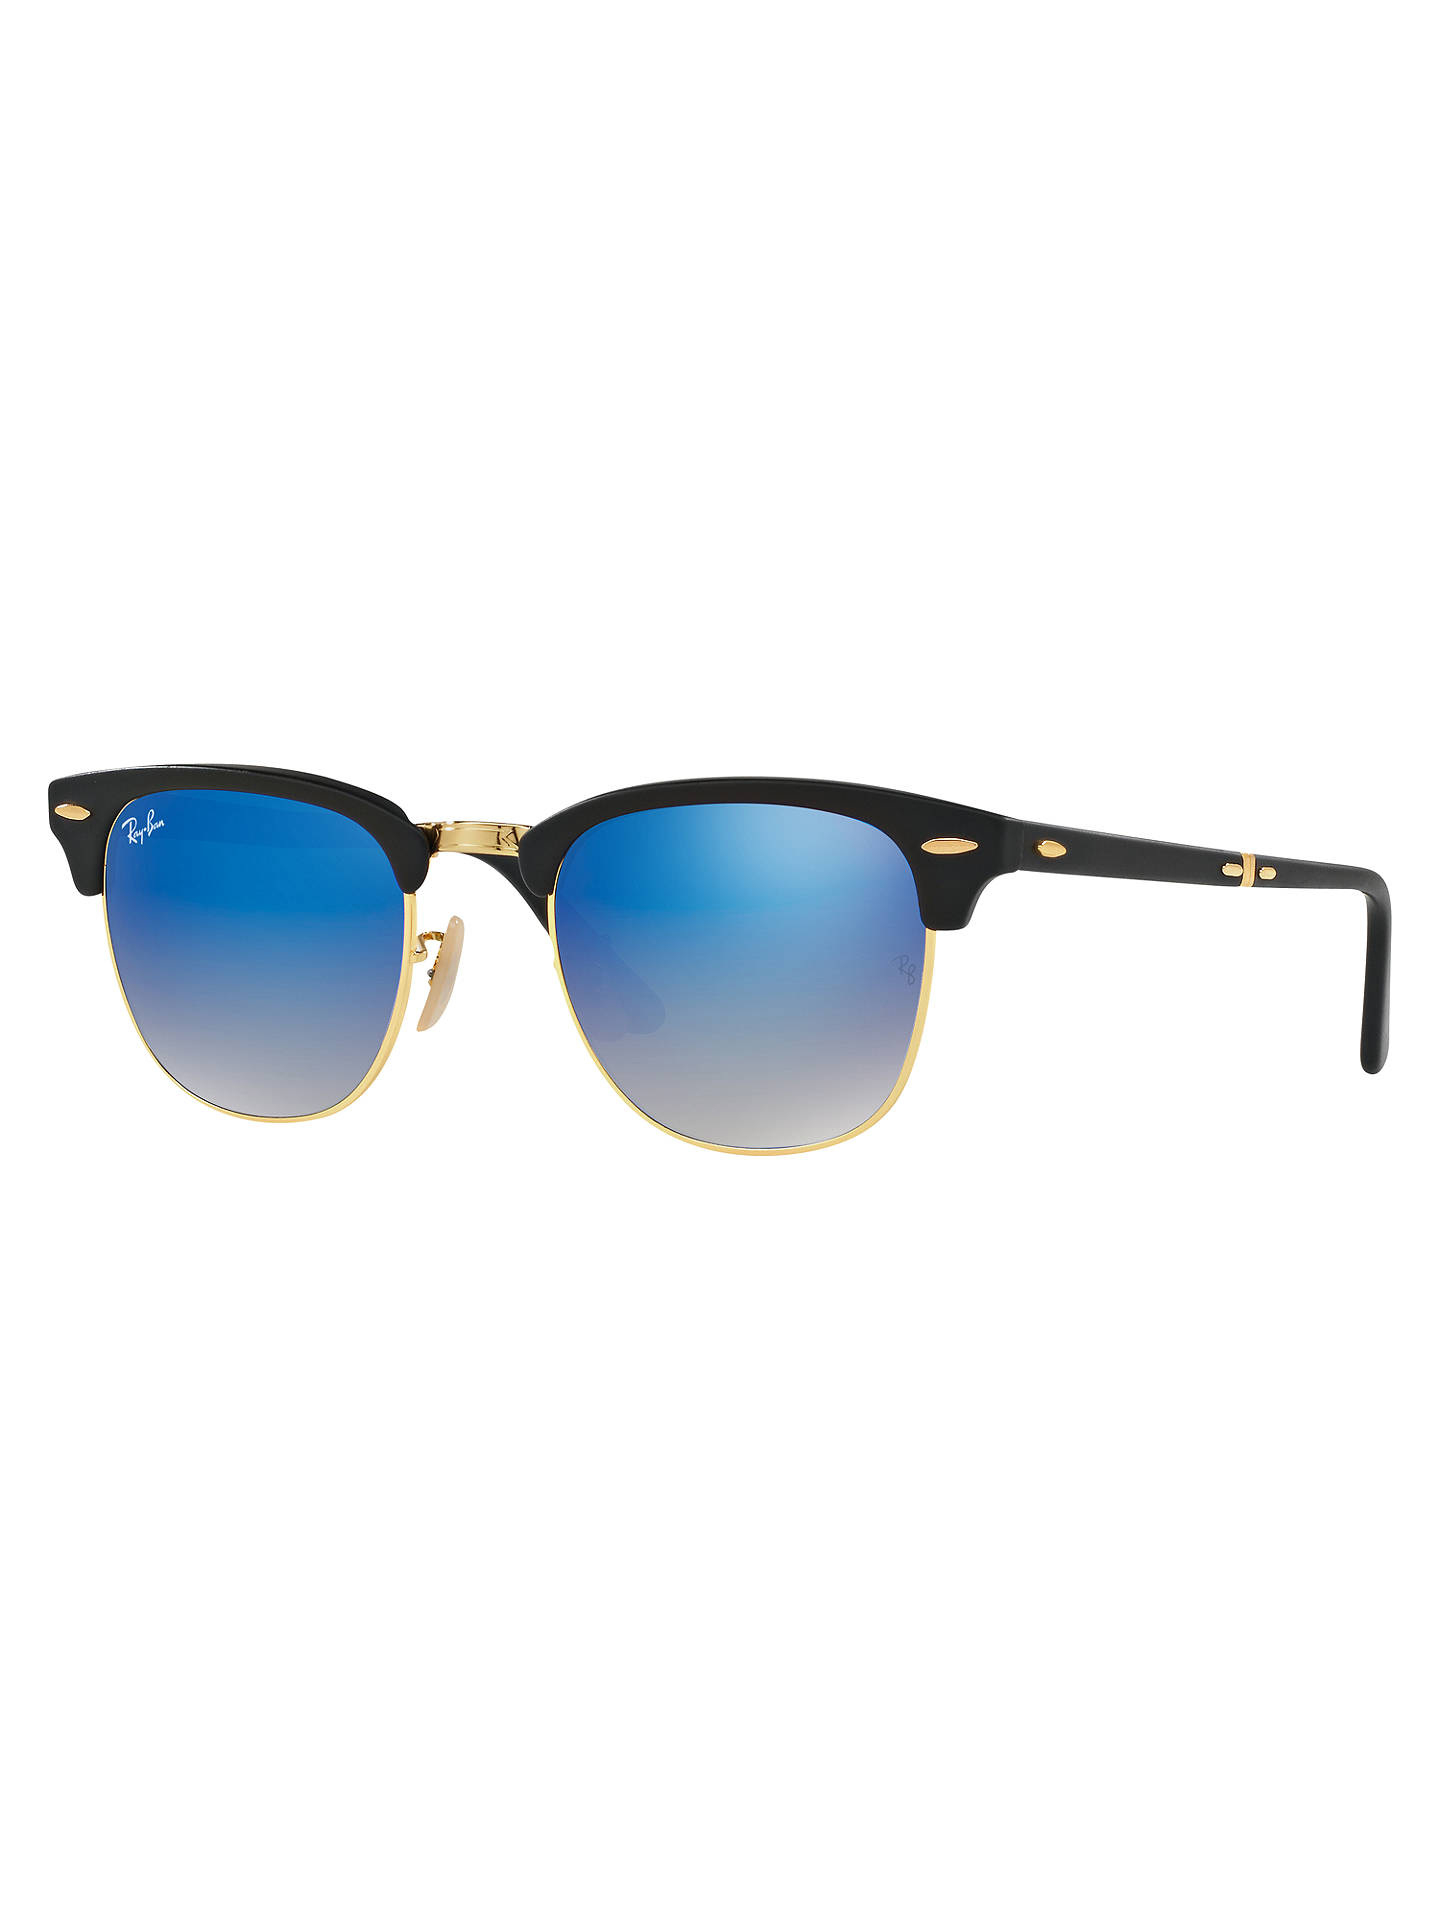 BuyRay-Ban RB2176 Folding Clubmaster Sunglasses, Black/Blue Online at johnlewis.com